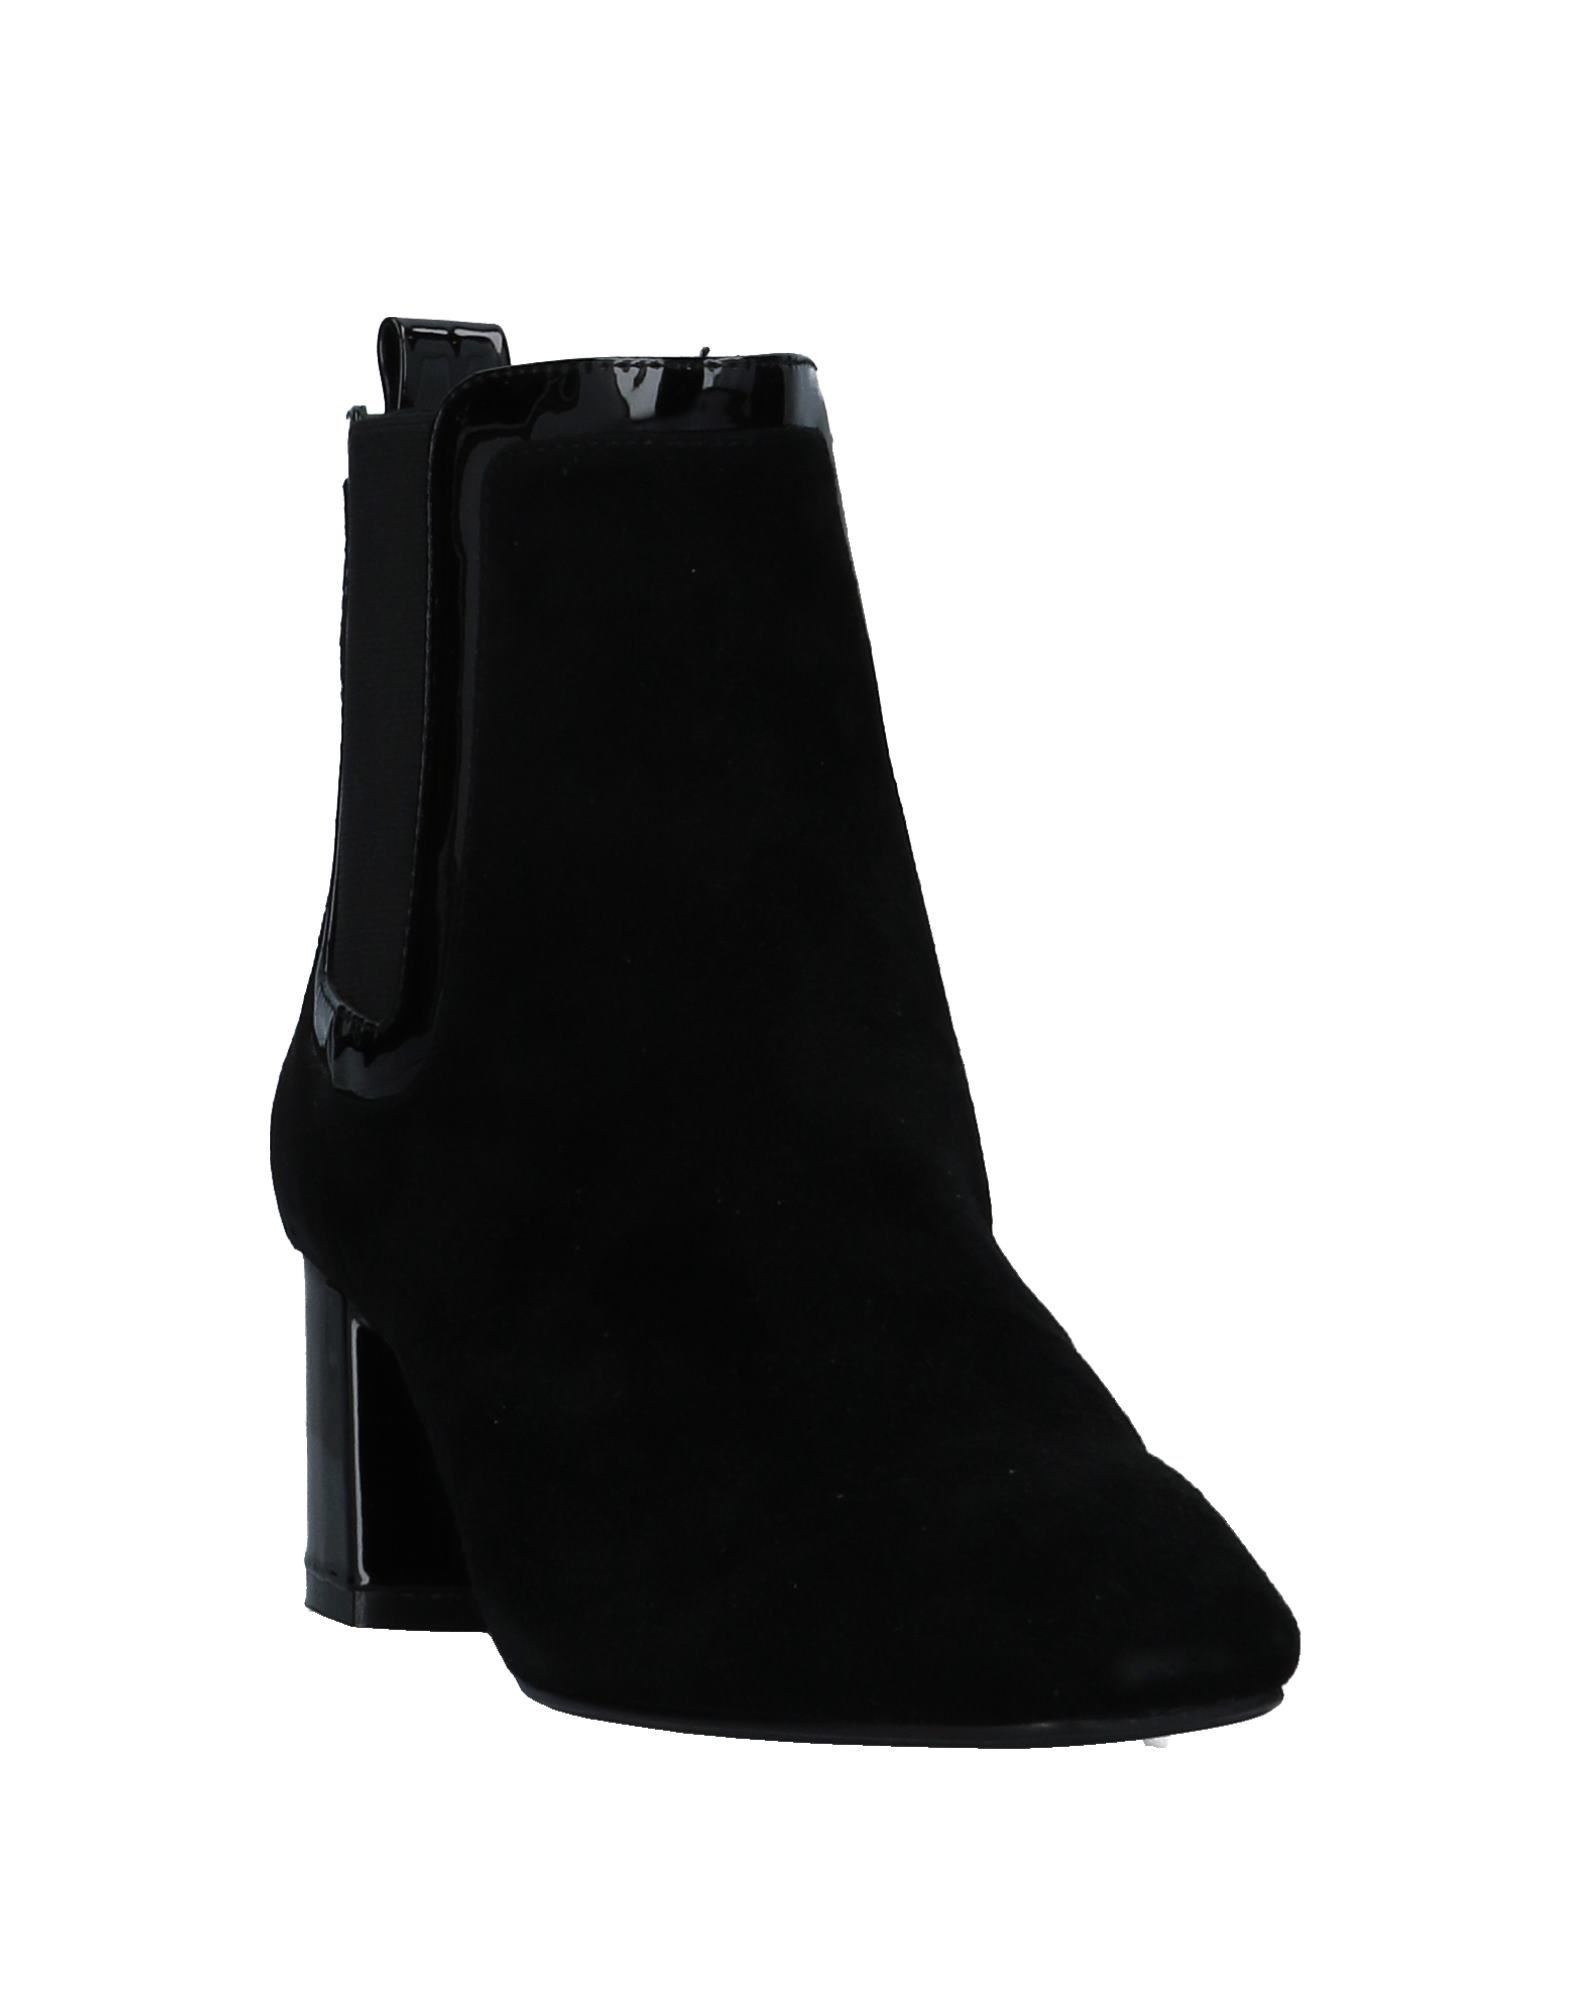 Luciano Barachini Ankle Boot - Women Luciano Barachini Barachini Barachini Ankle Boots online on  United Kingdom - 11533613BL fce0da